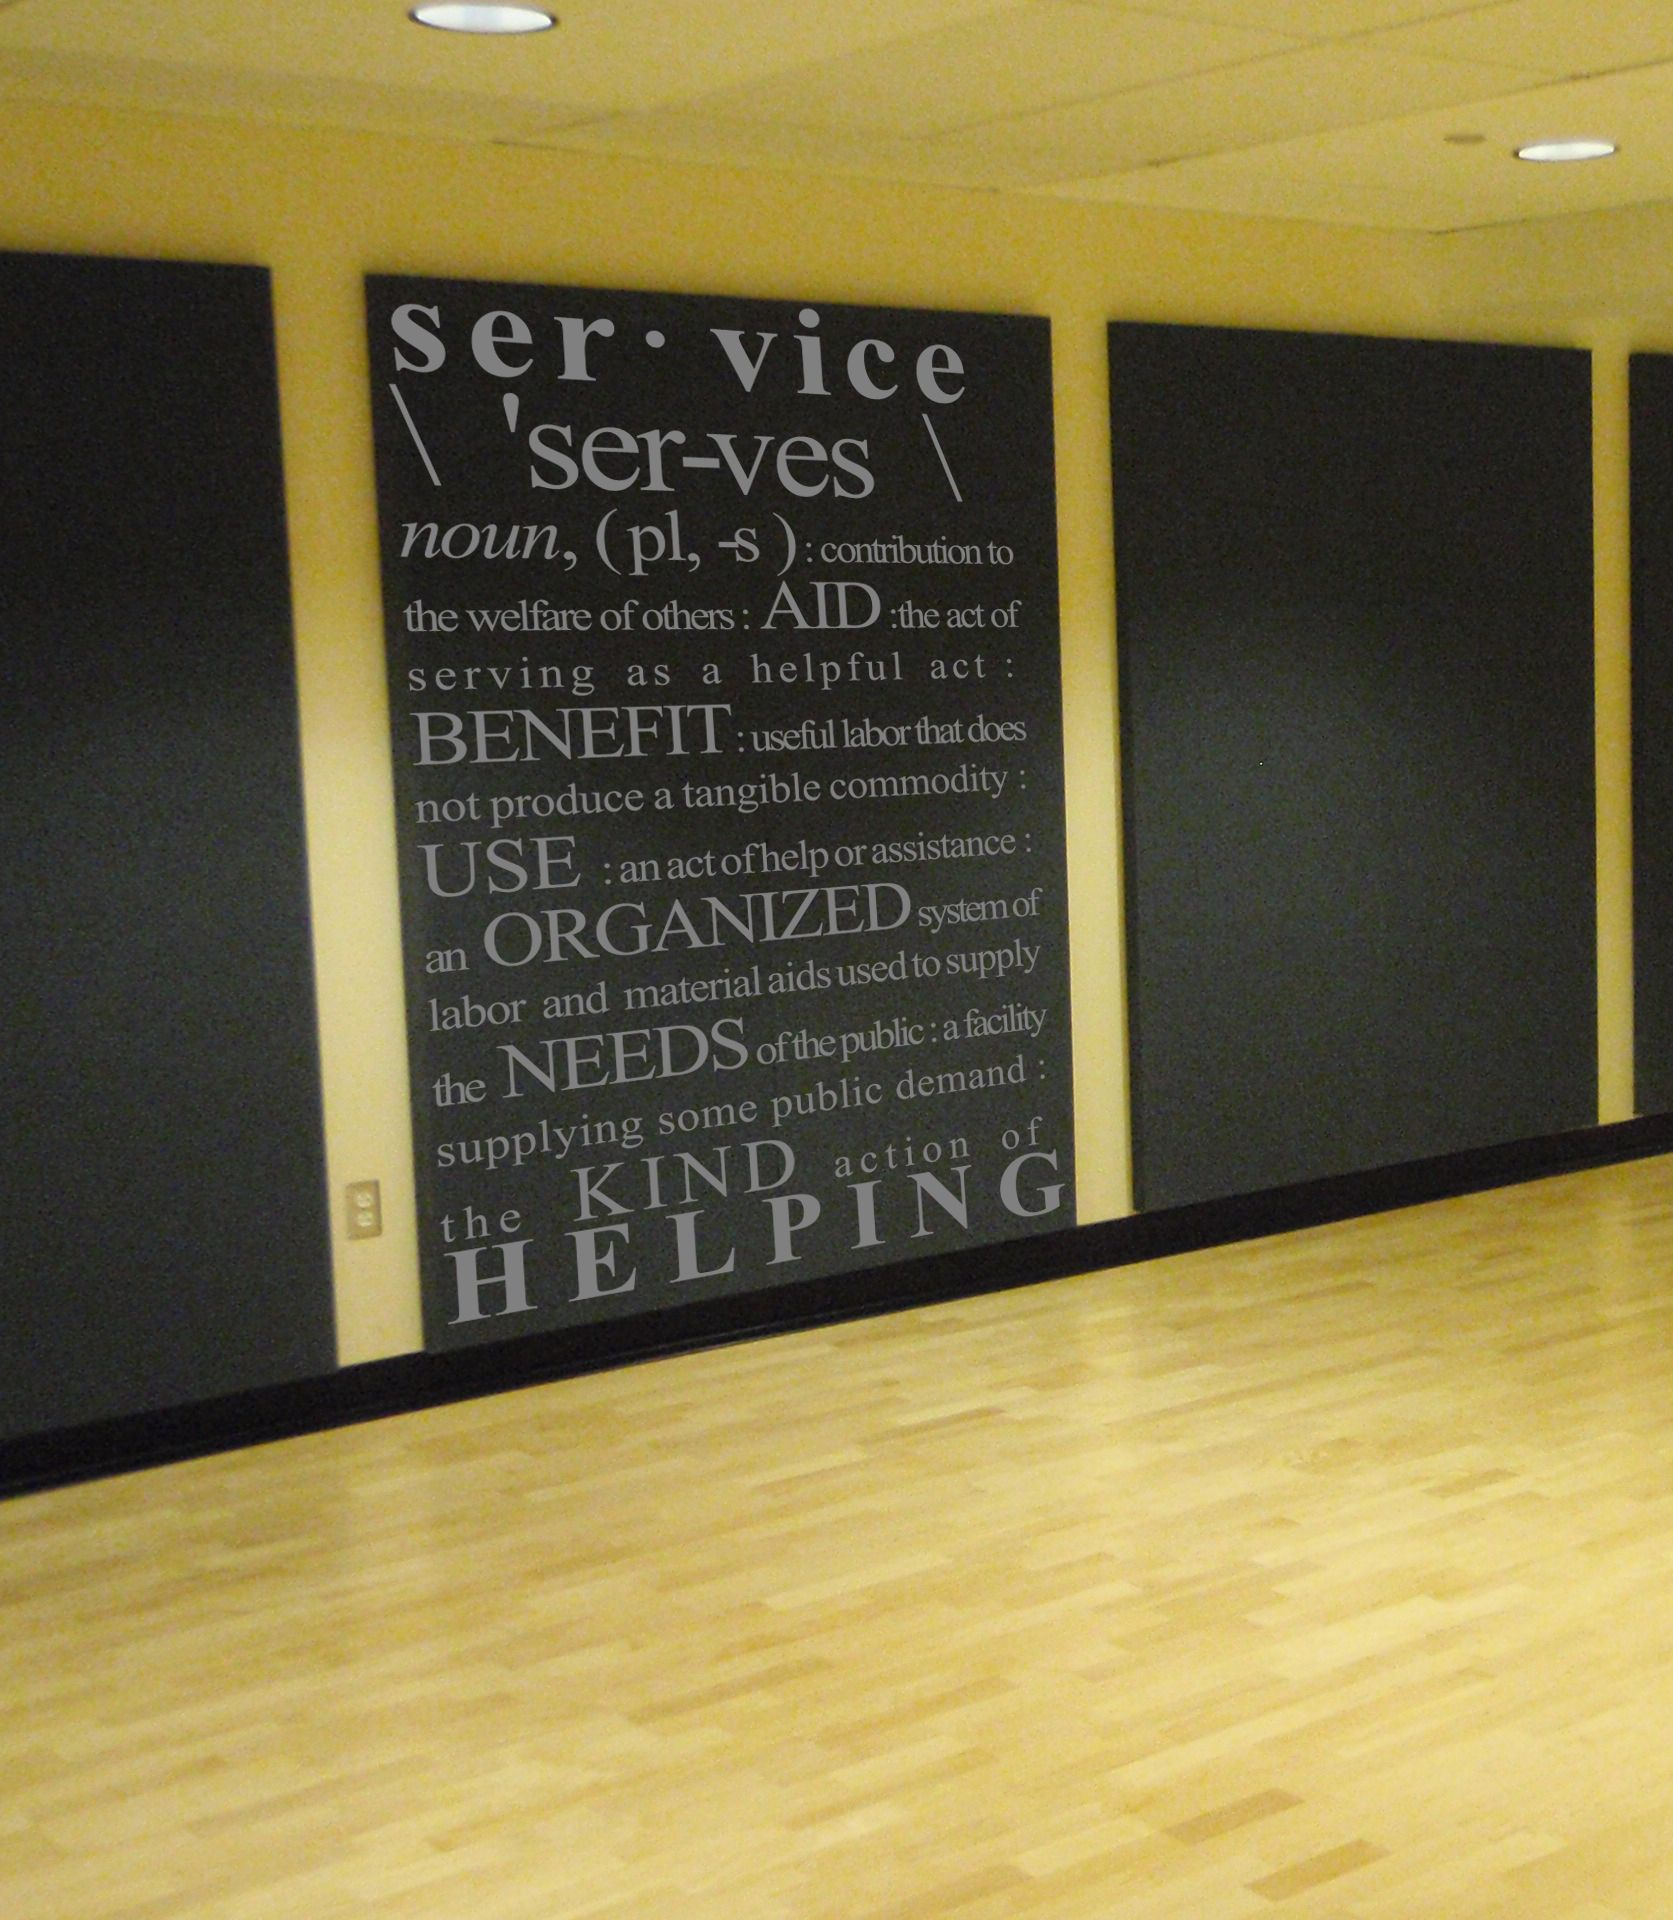 Service Definition Wall Decal | recognition wall | Pinterest ...